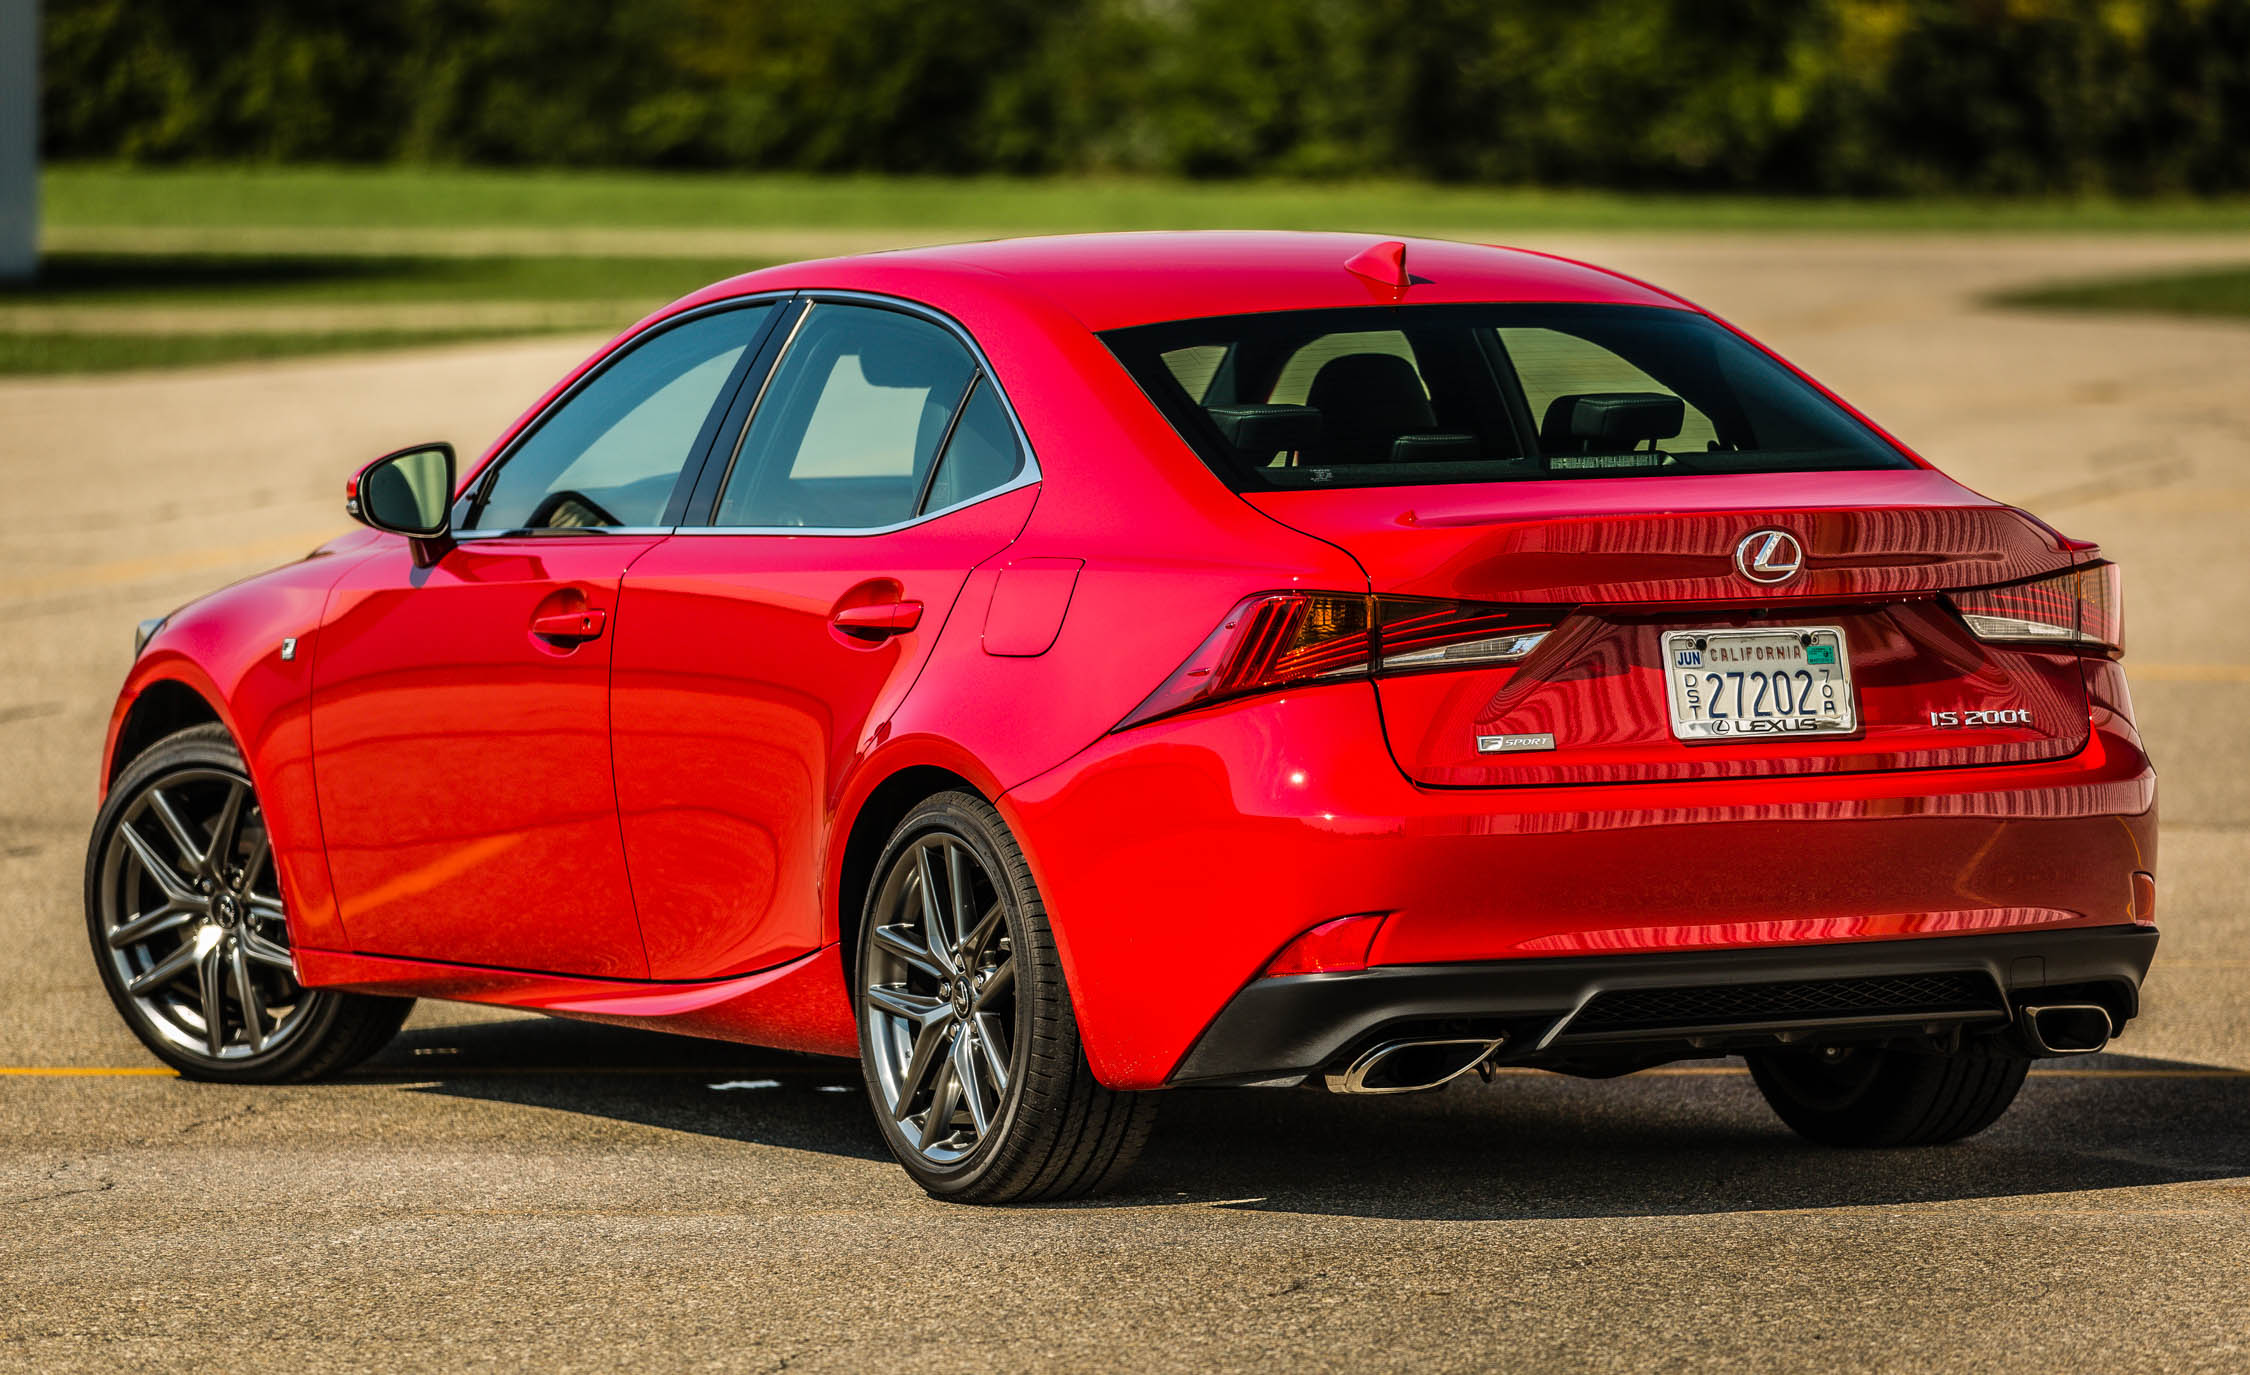 2017 Lexus IS 200t F Sport Red Exterior Rear And Side (Photo 16 of 29)